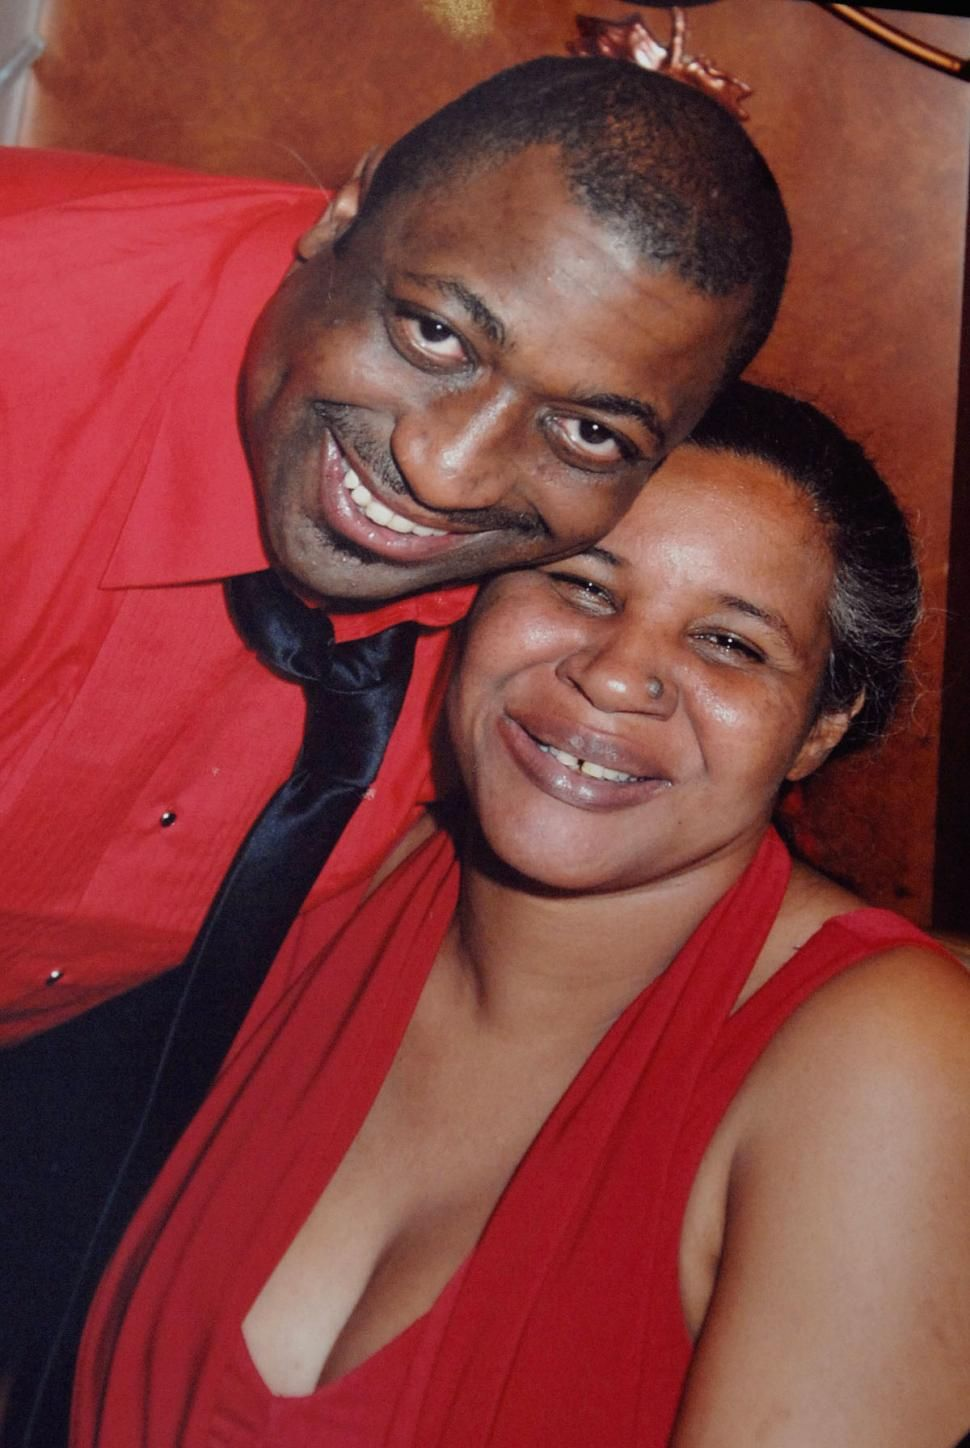 Eric Garner With His Wife Garner Died While Being Held Down In A